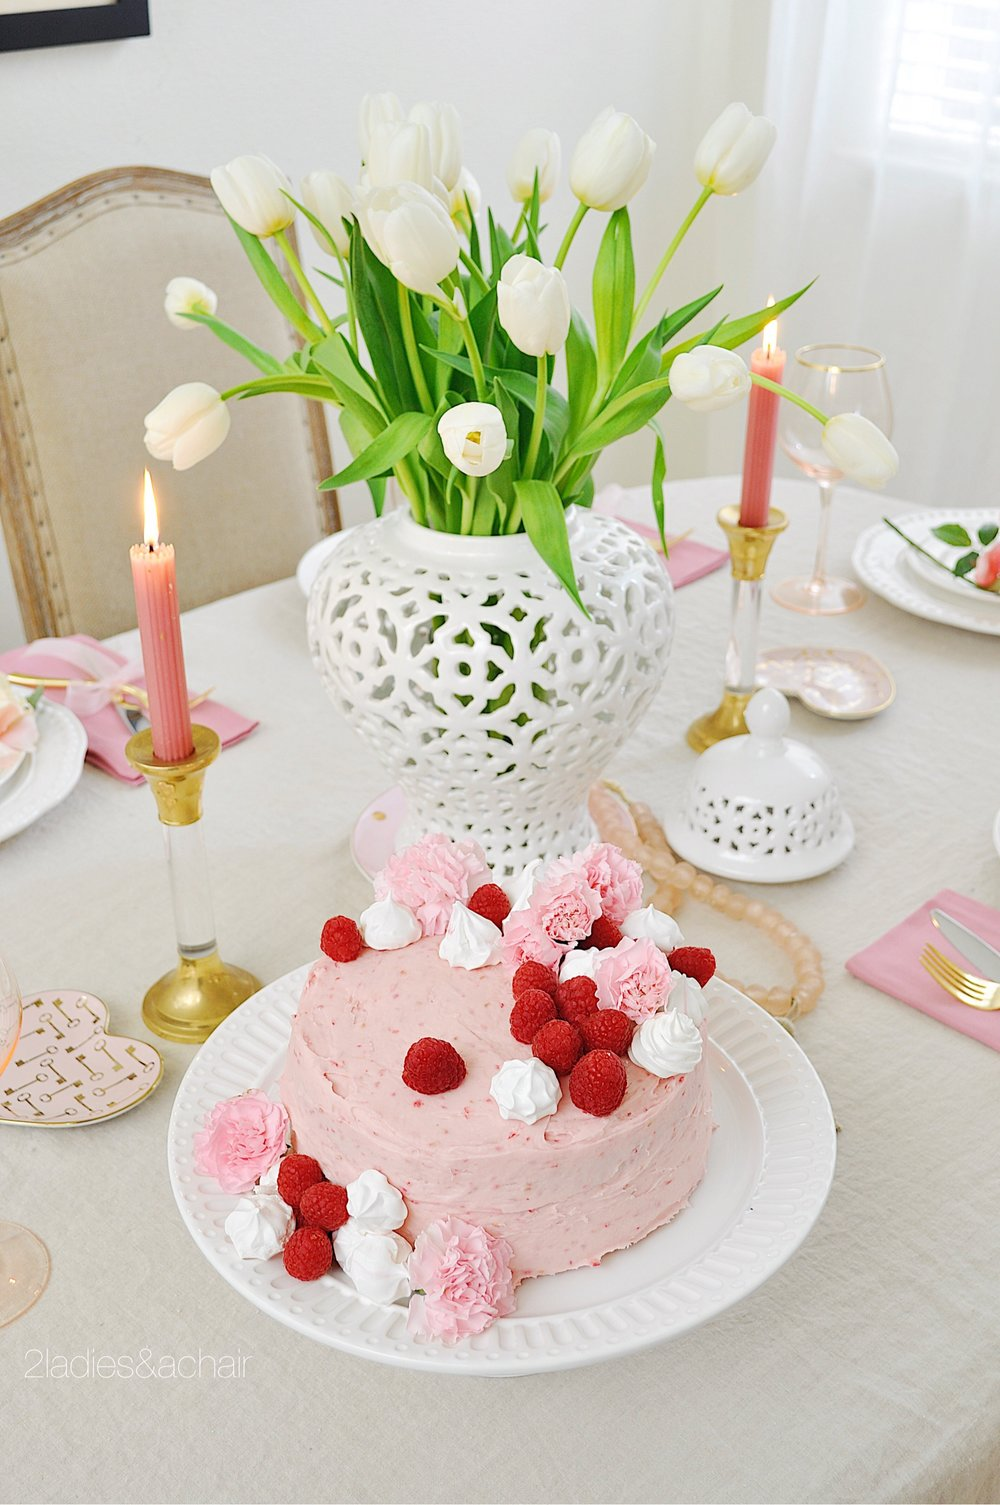 valentine's day table decor IMG_8940.JPG